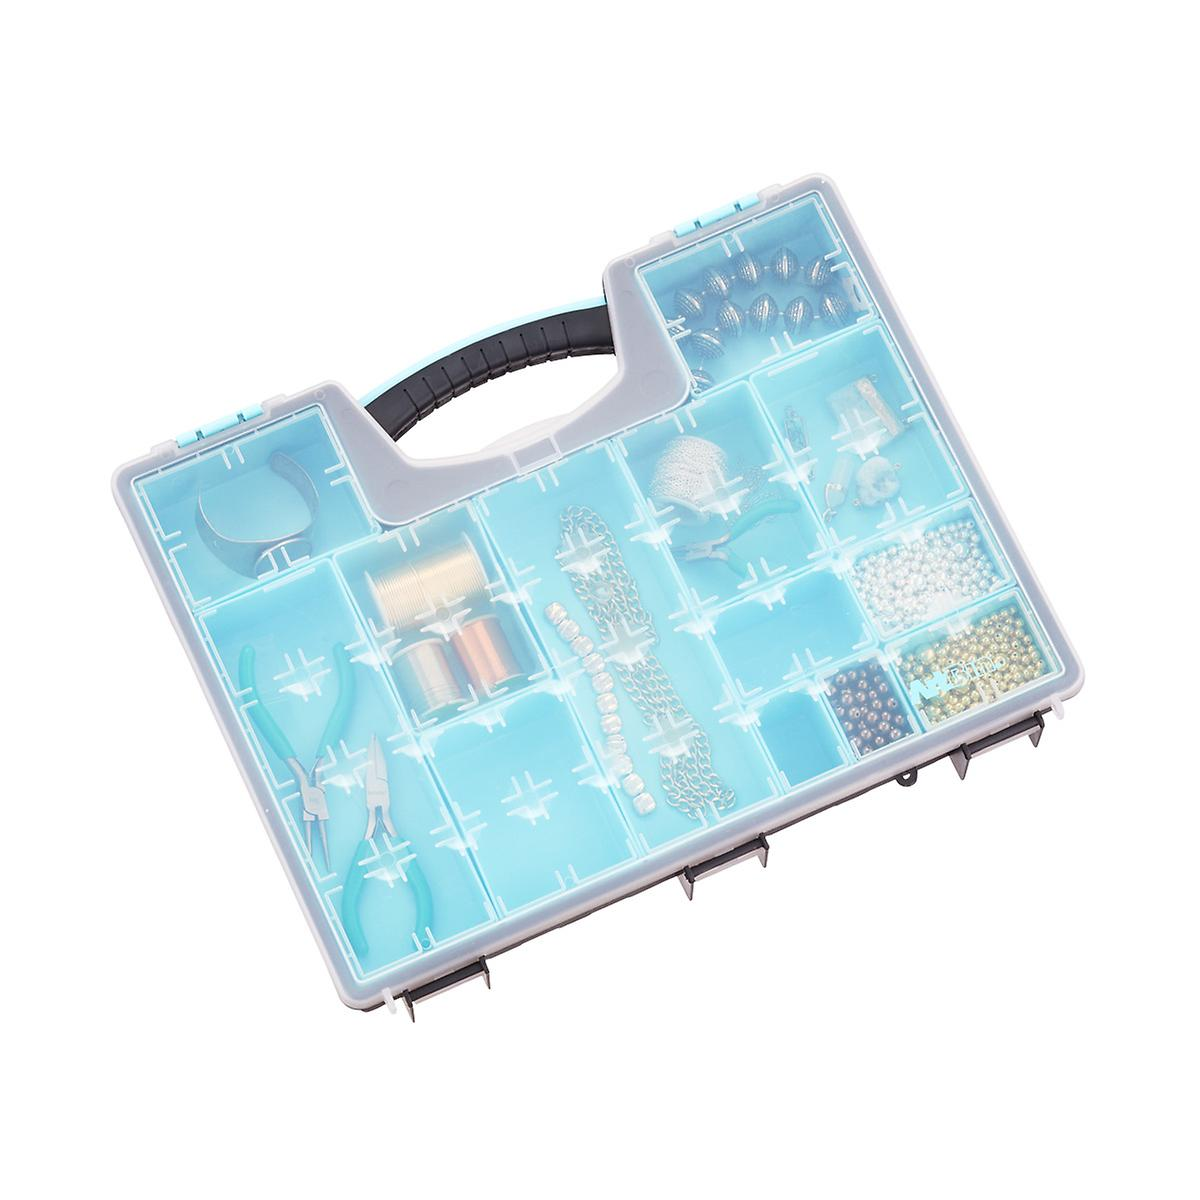 ArtBin Large Quickview Organizer